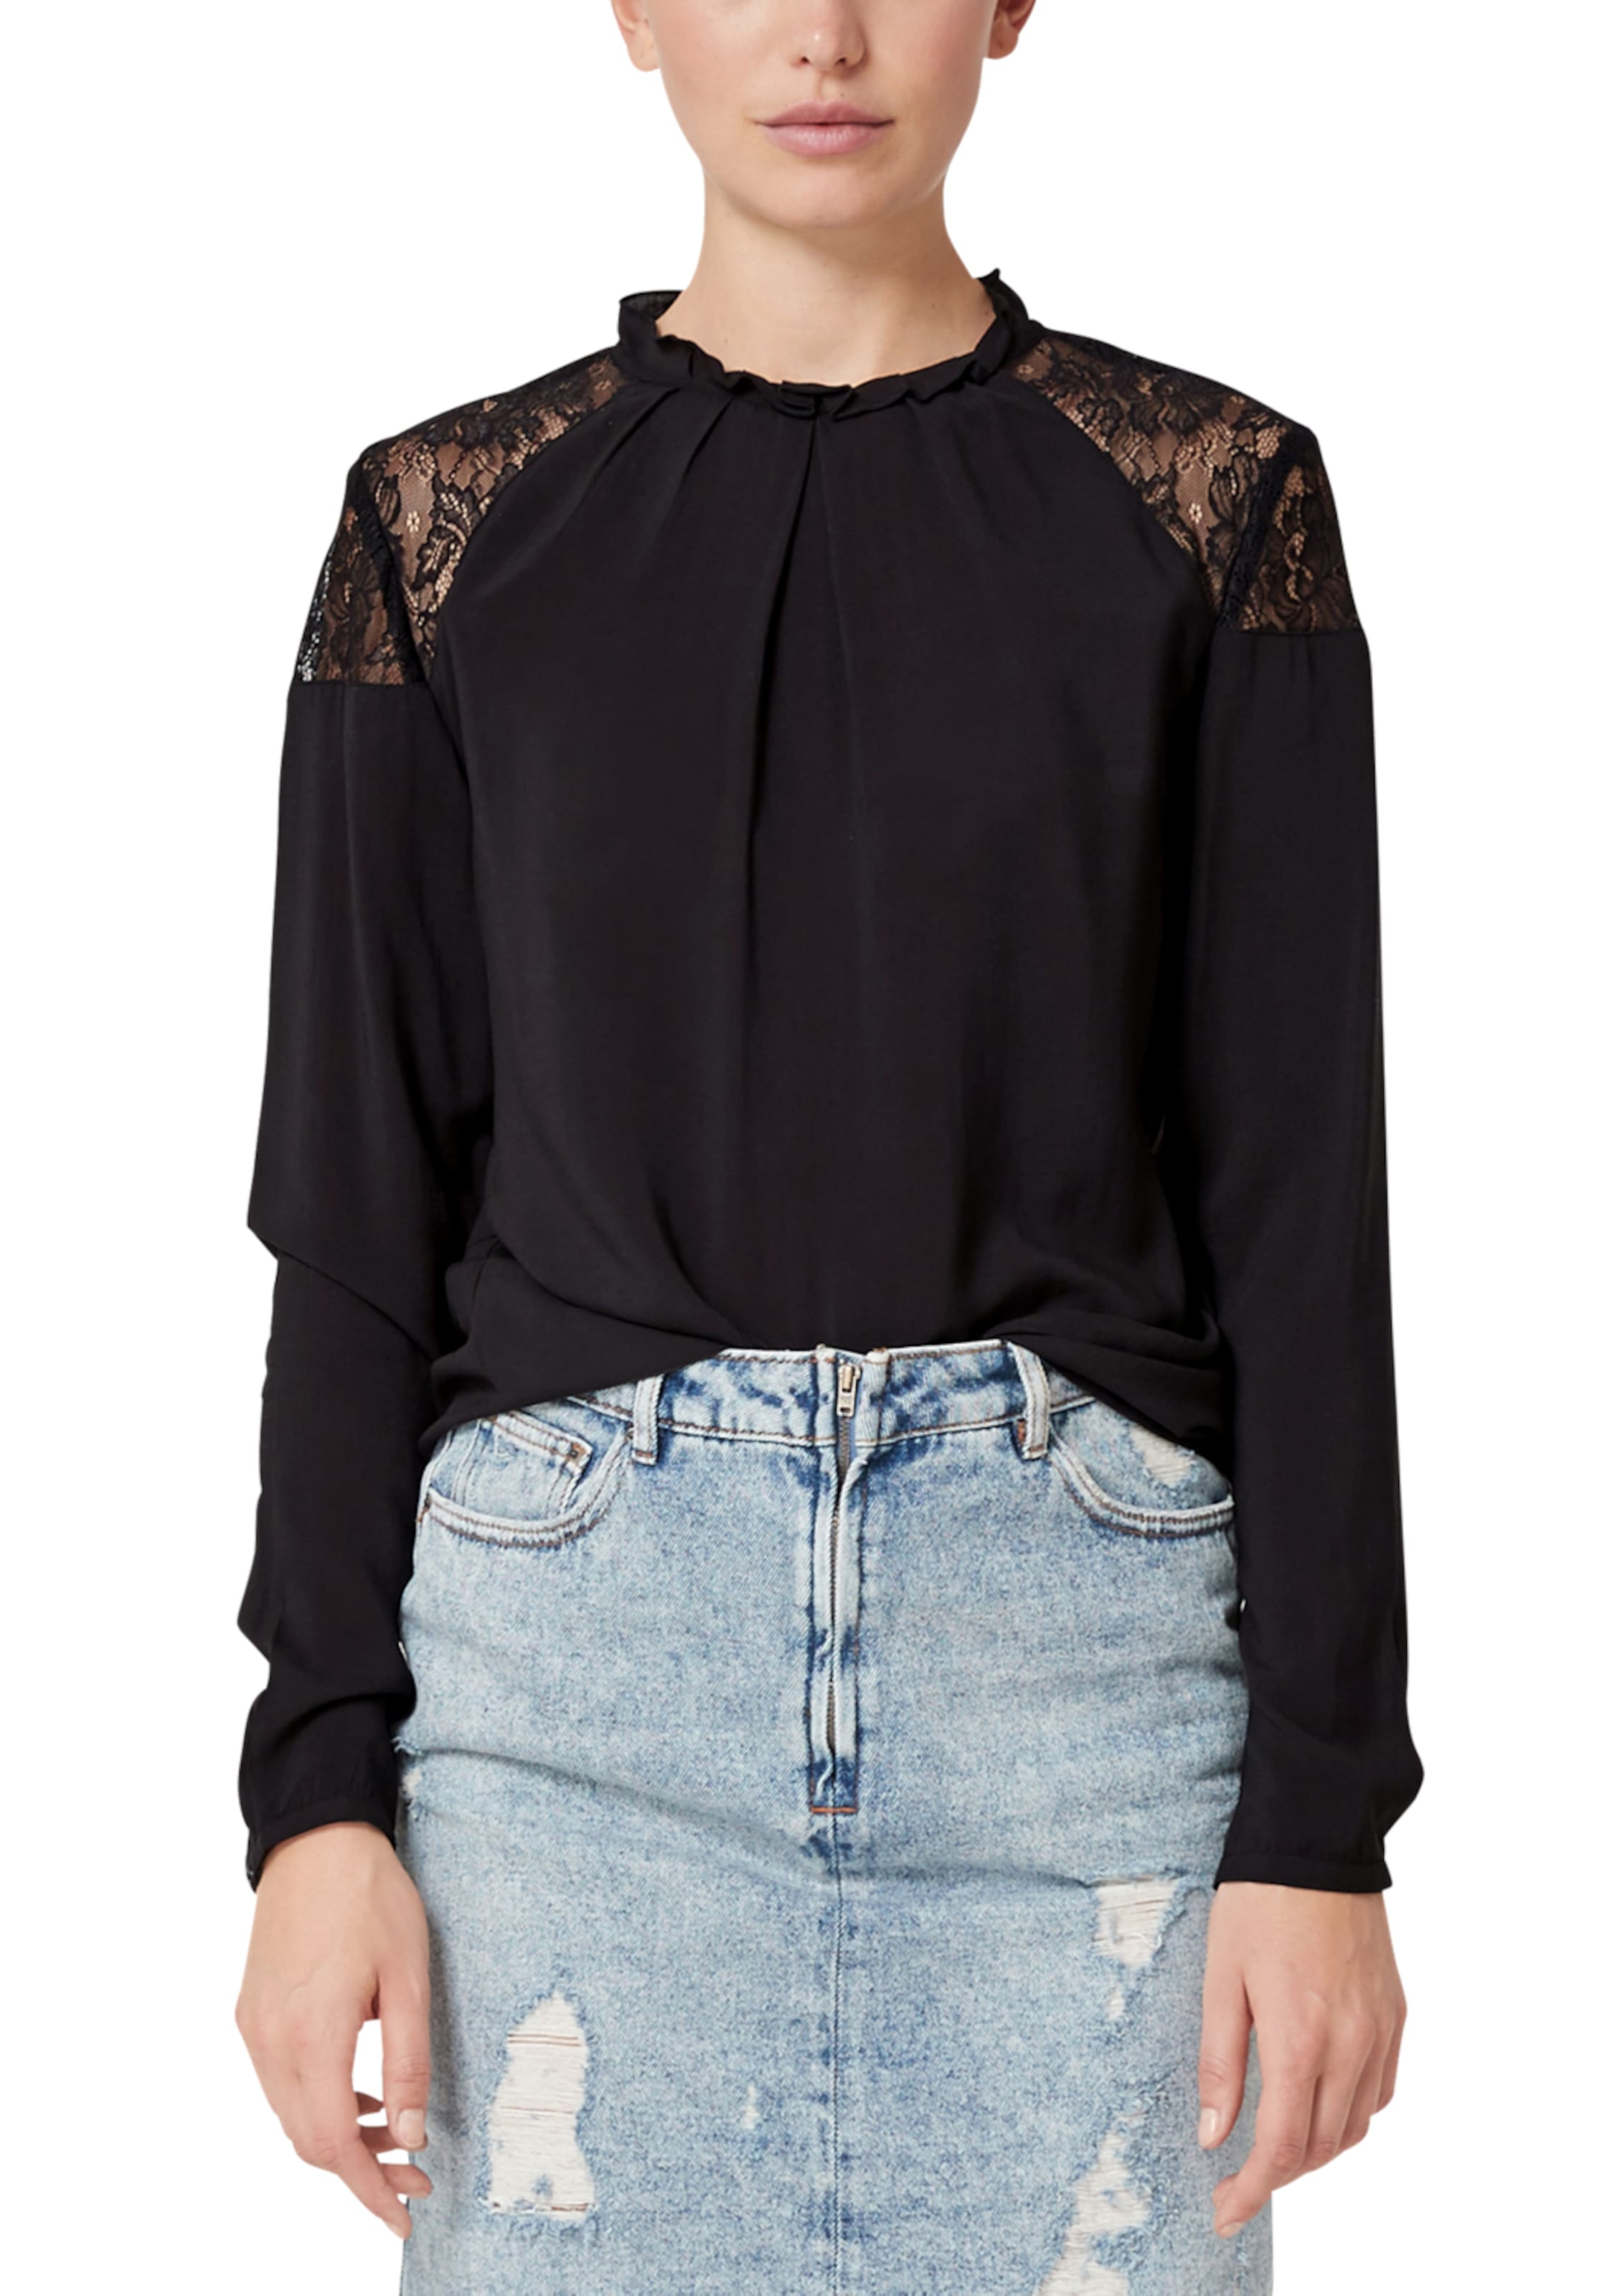 In Bluse Schwarz By Designed Q s ON8wvn0m